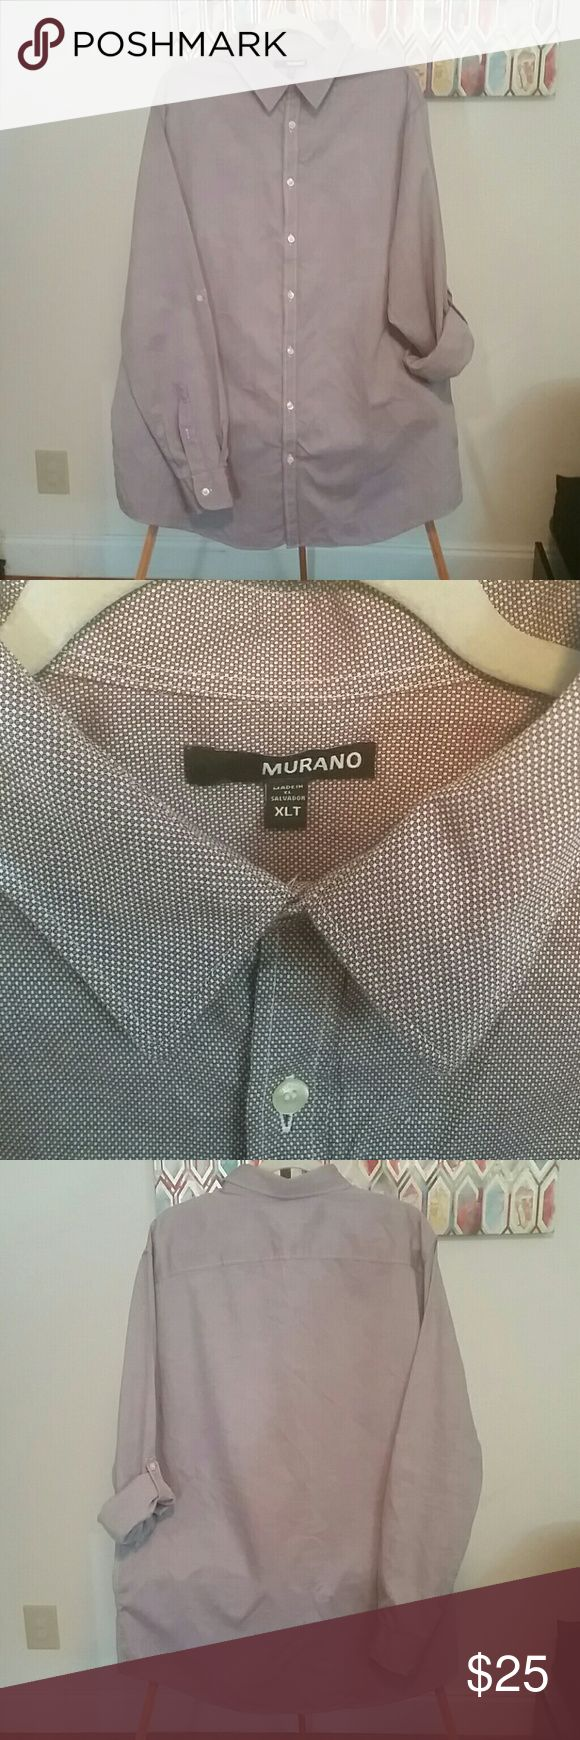 Big & Tall! Men's Button Down Shirt Excellent condition and stylish date night or work shirt. It's a purplish color and I tried to capture that with my phone camera. I'm open to offers or even a bundle! Let me know! 💙💙 Murano Shirts Dress Shirts